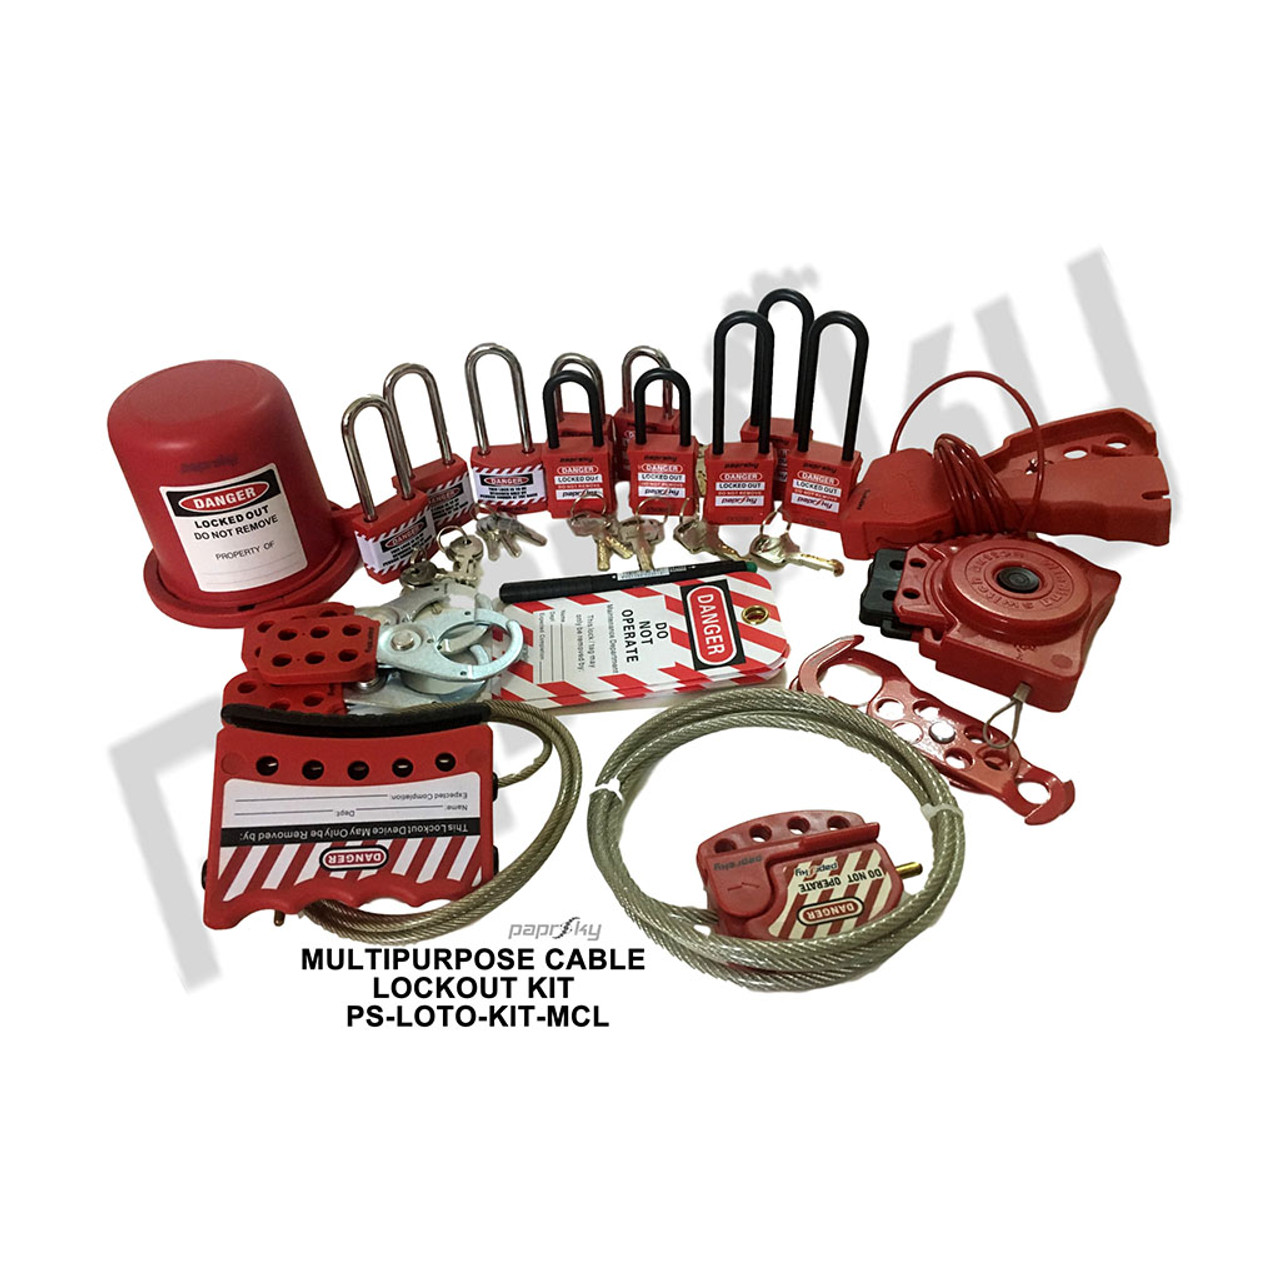 Multipurpose Cable Lockout Kit  PS-LOTO-KIT-MCL